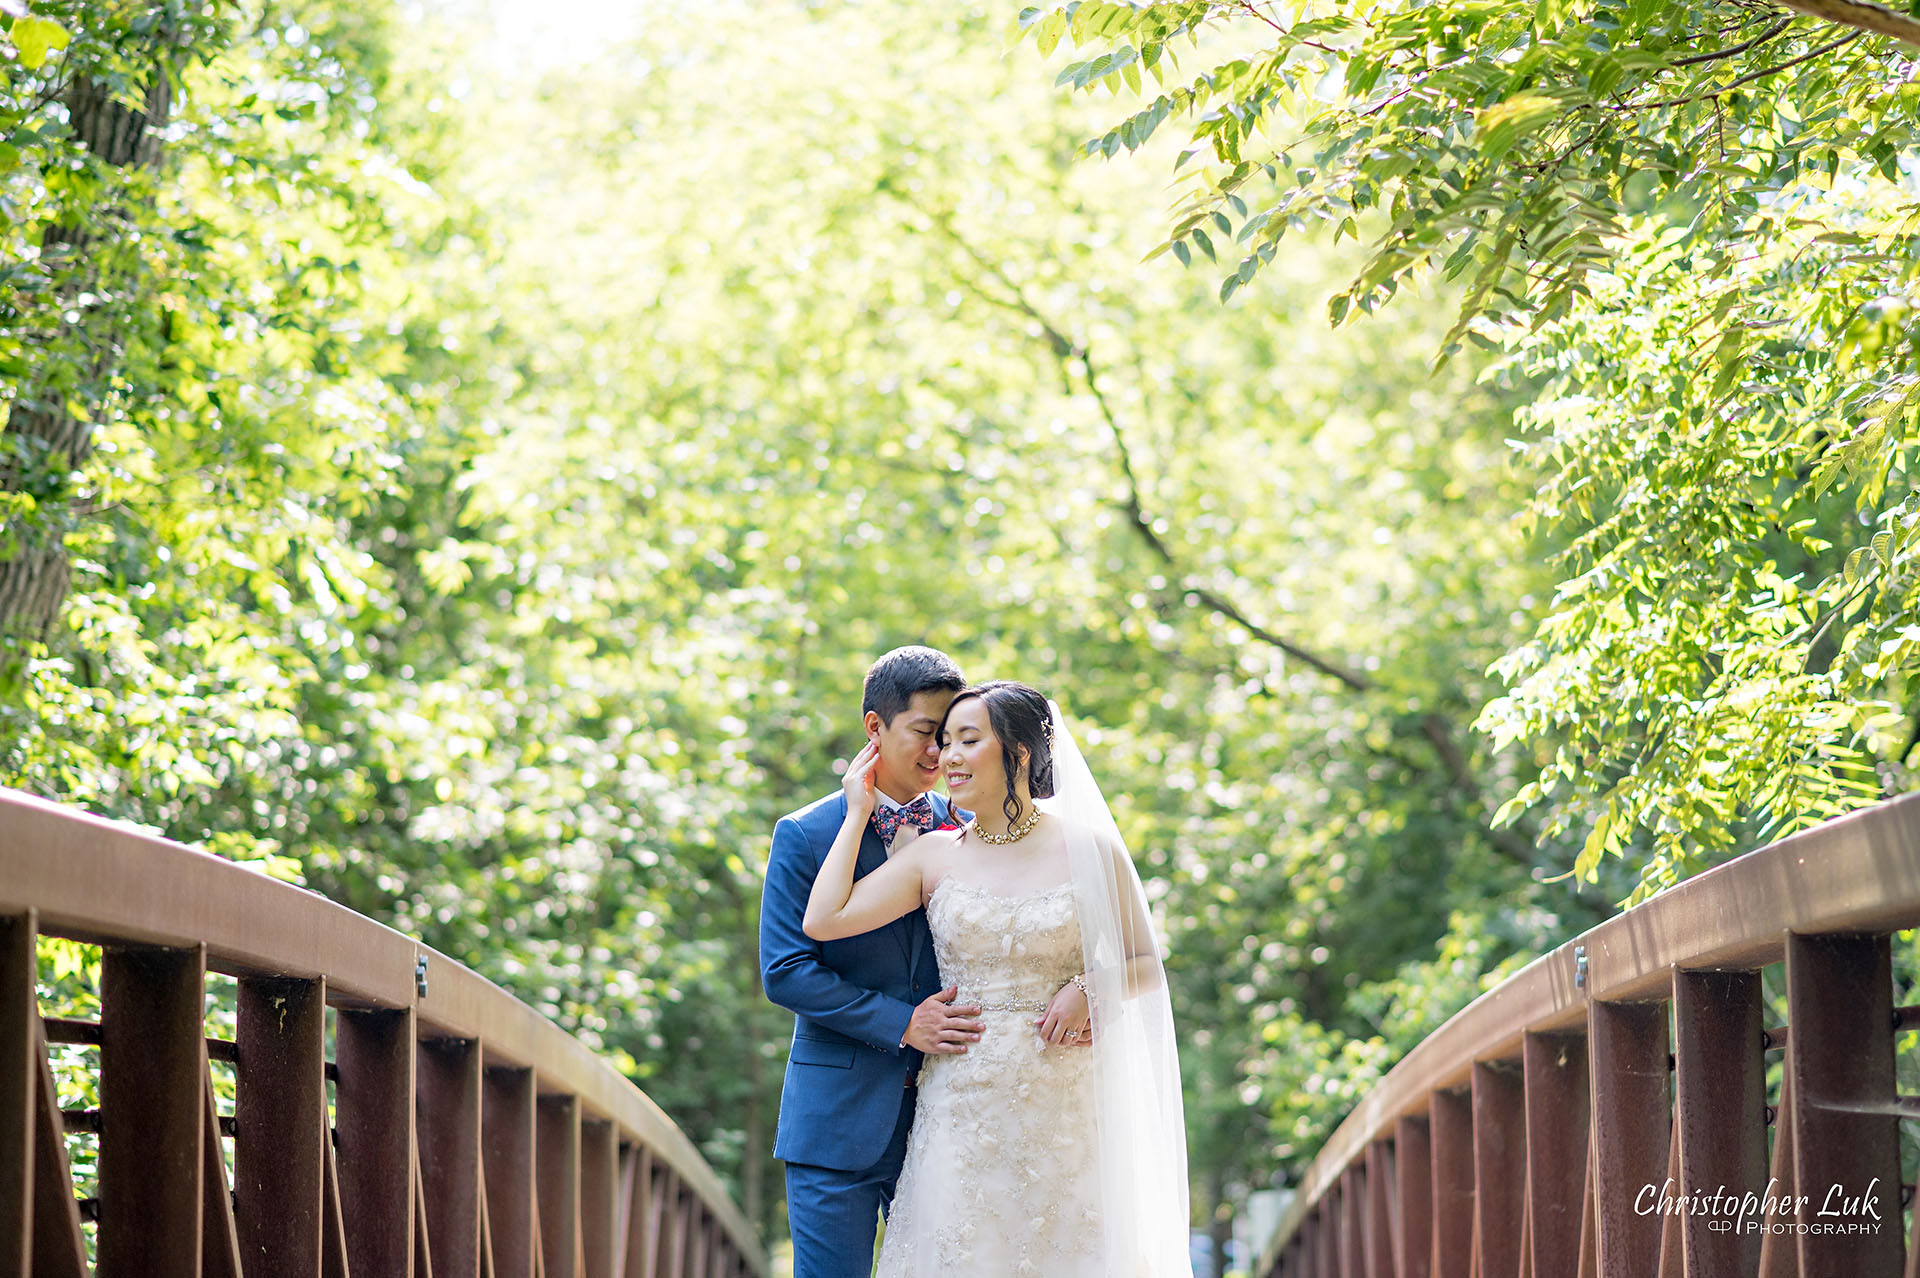 Christopher Luk Toronto Wedding Photographer Bridle Trail Baptist Church Unionville Main Street Crystal Fountain Event Venue Bride Groom Natural Photojournalistic Candid Creative Portrait Session Pictures Forest Trail Walkway Bridge Park Hug Kiss Portrait Intimate